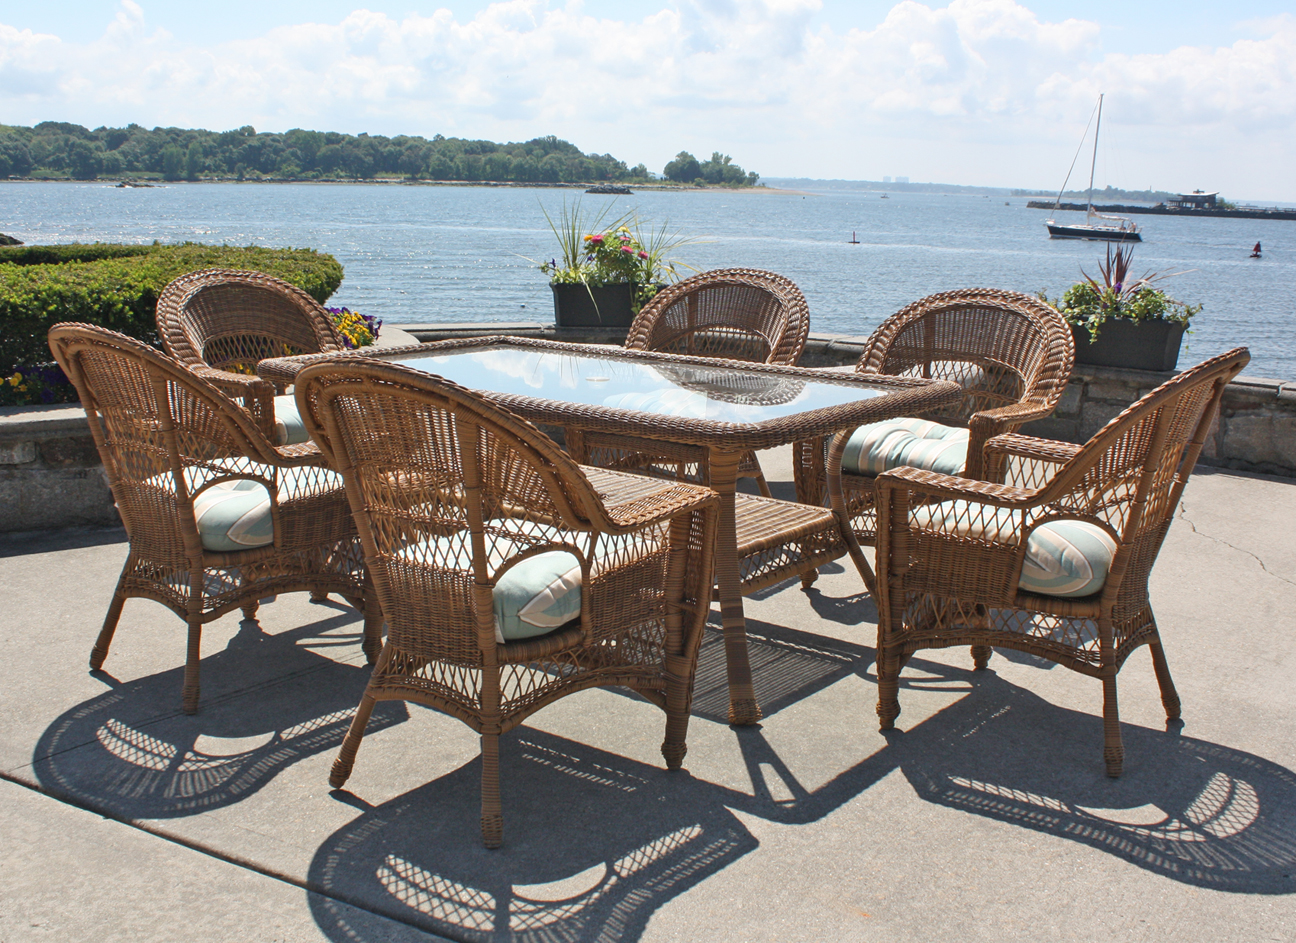 Outdoor Wicker Dining Chairs Outdoor Wicker Dining Set Cape Cod Natural Finish